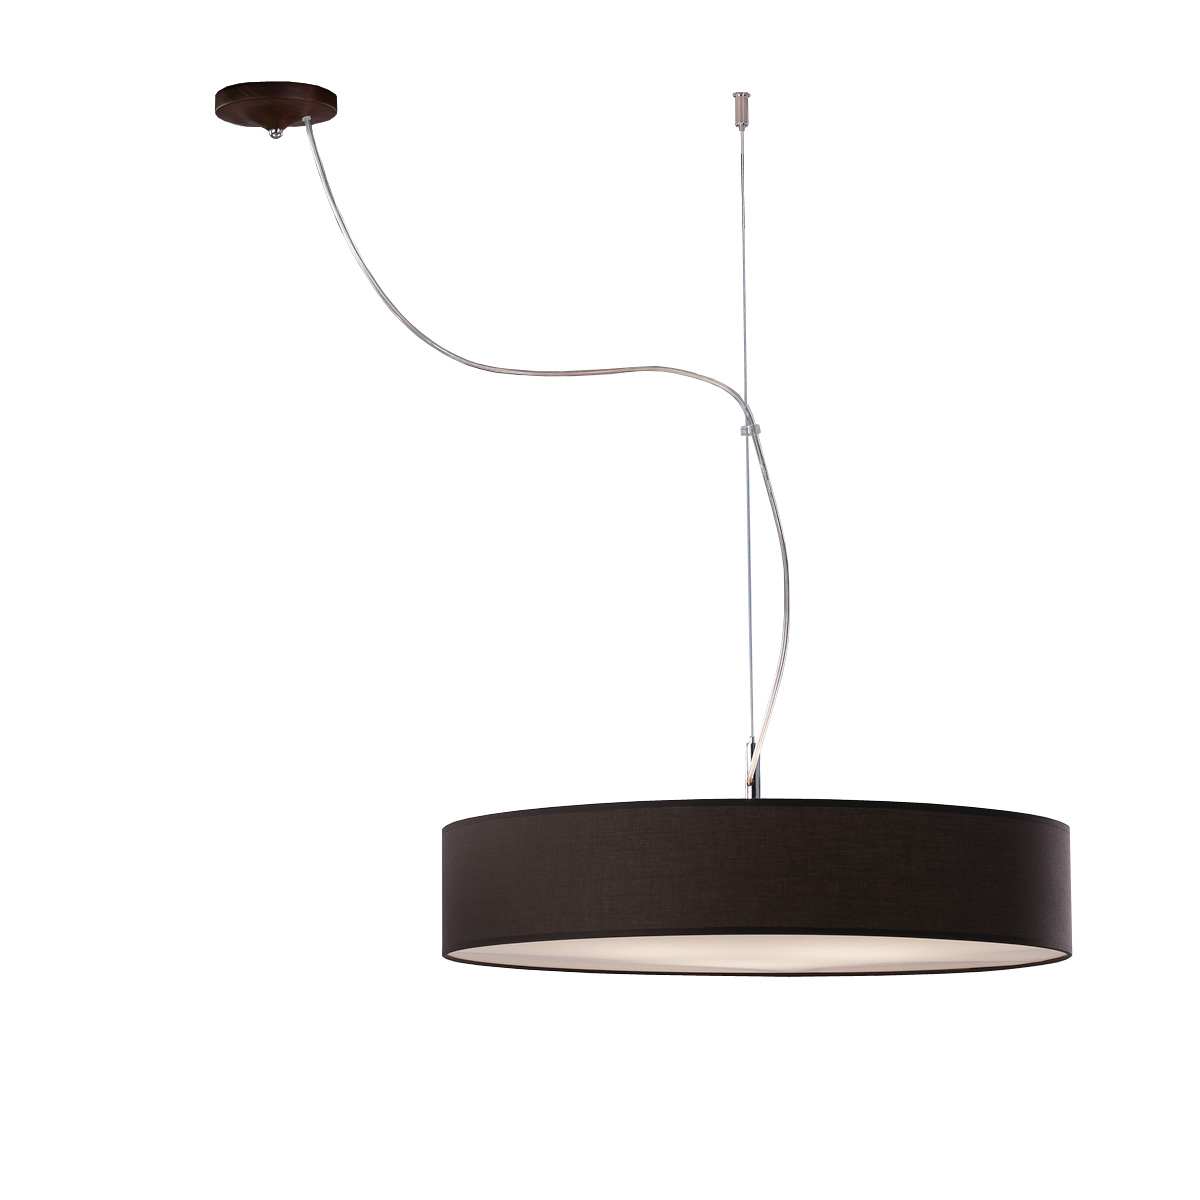 Ανθρακί φωτιστικό DISCO ZEN dark grey suspension lamp